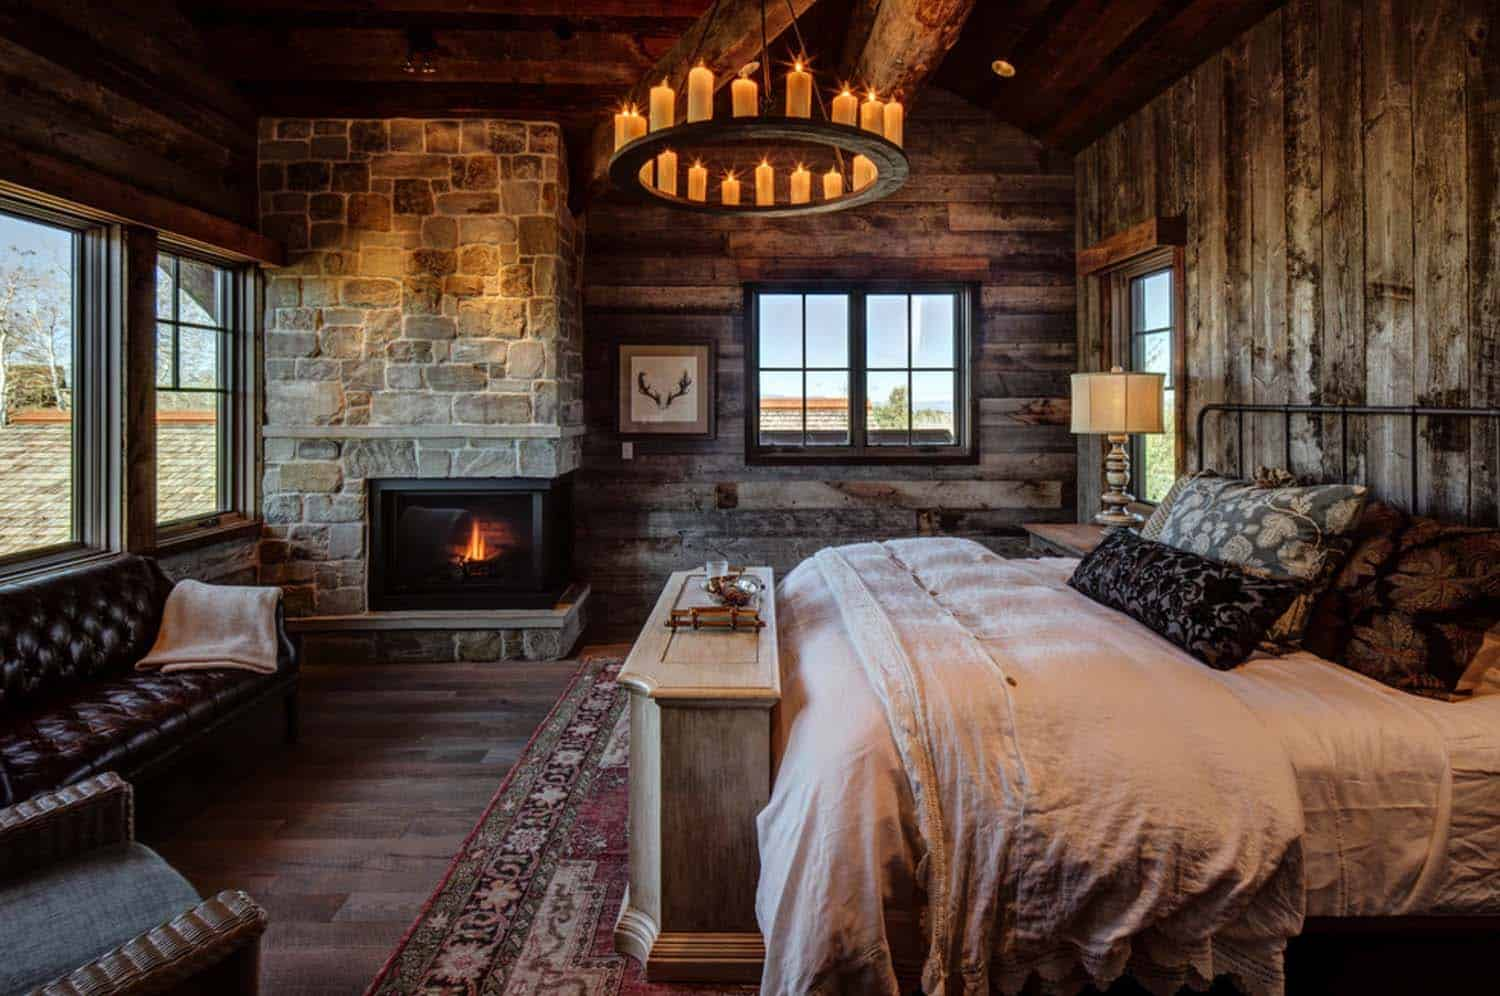 35 gorgeous log cabin style bedrooms to make you drool